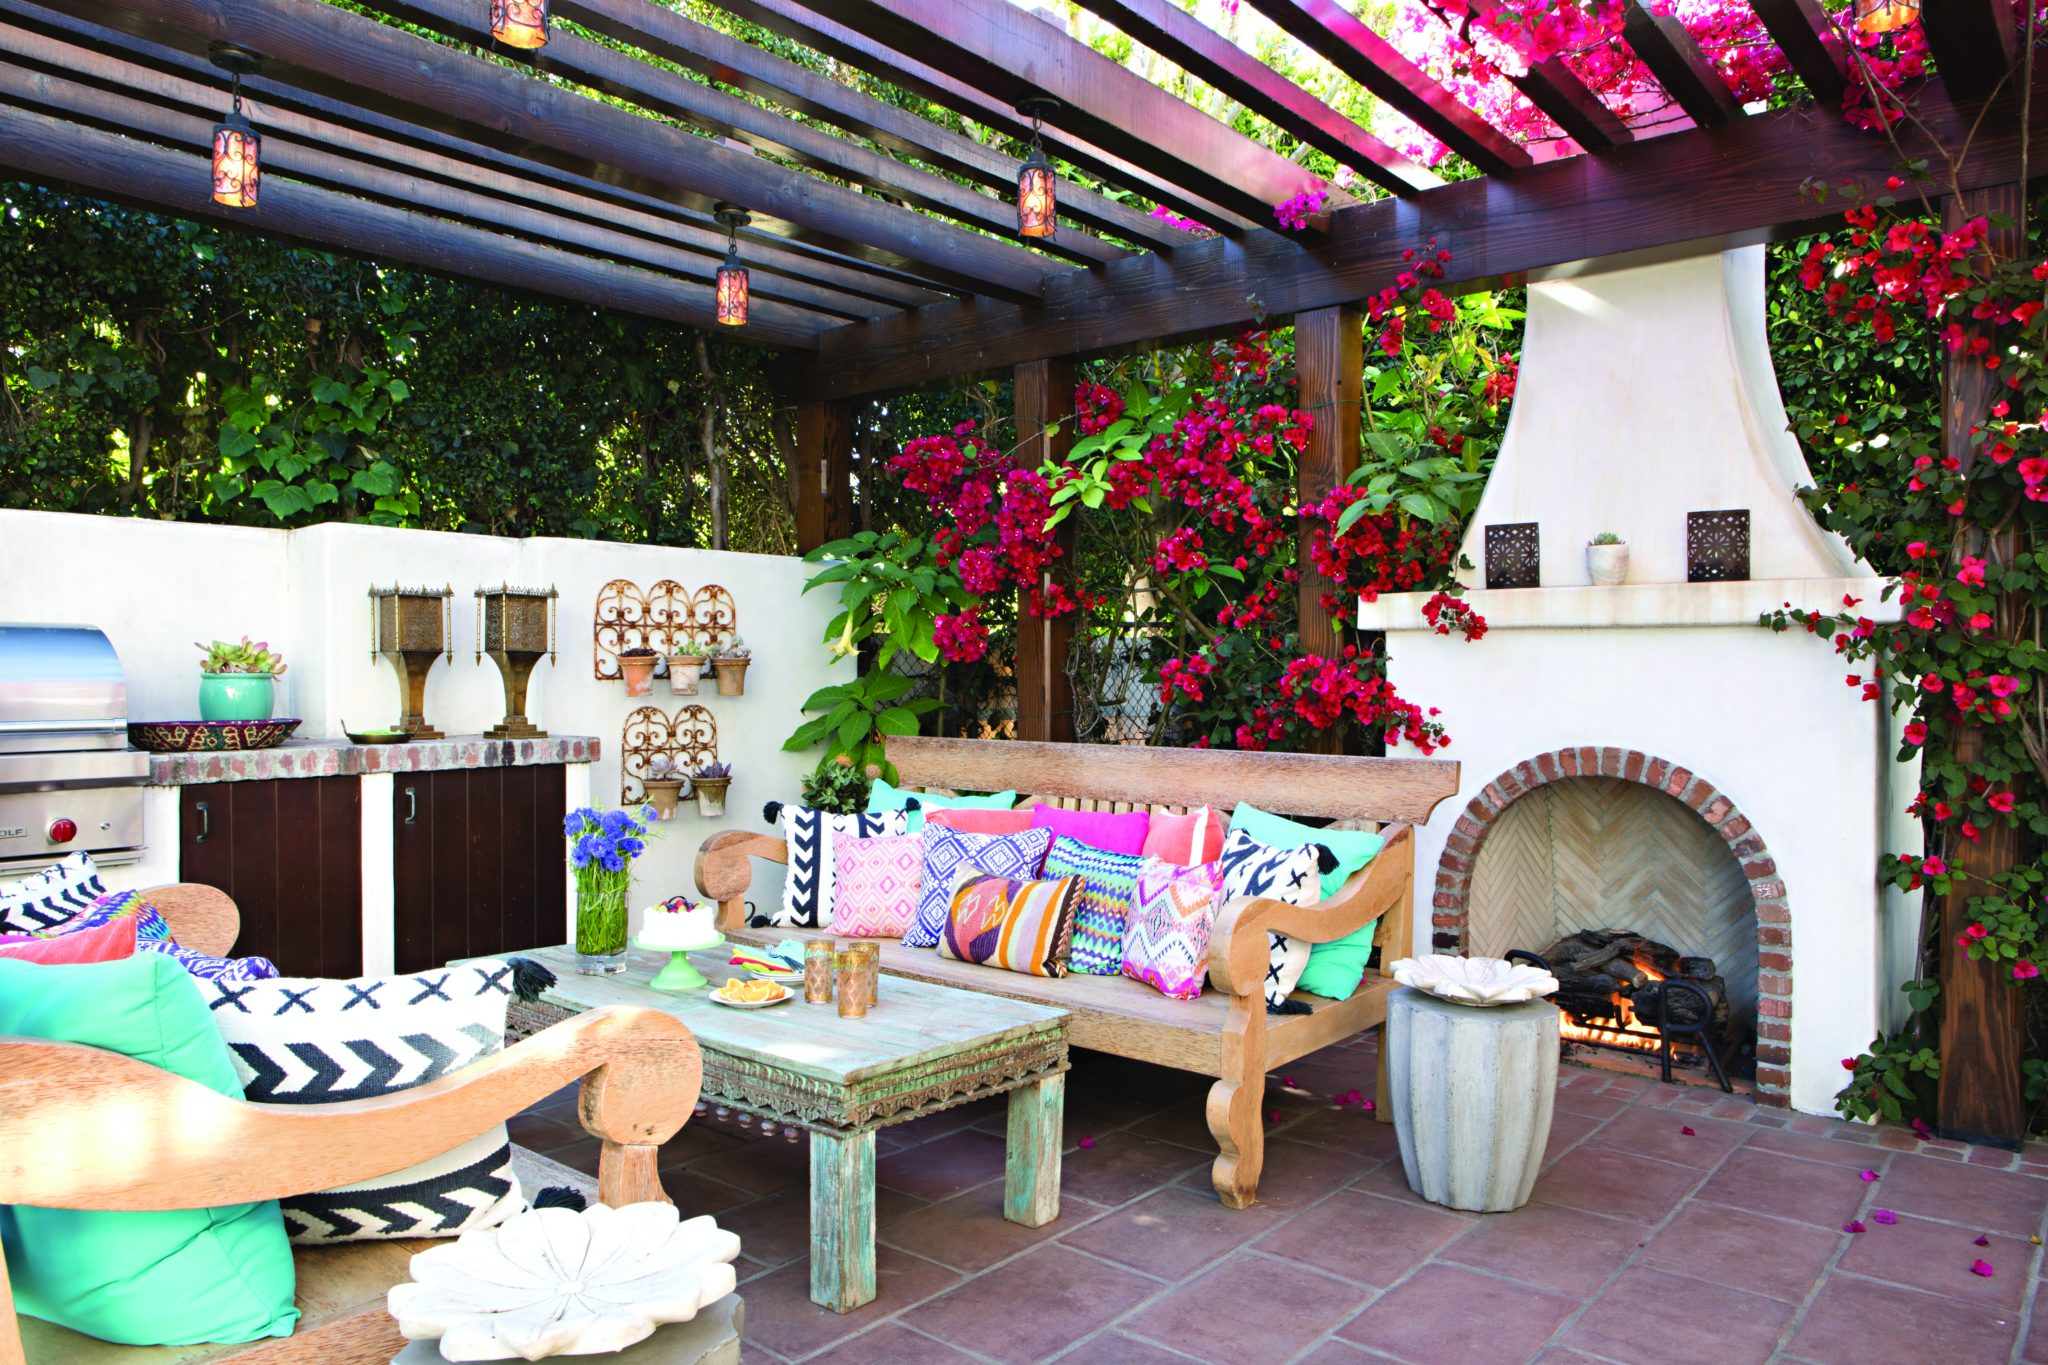 Pergola with outdoor kitchen, fireplace, and lounge area by Tim Barber Ltd.